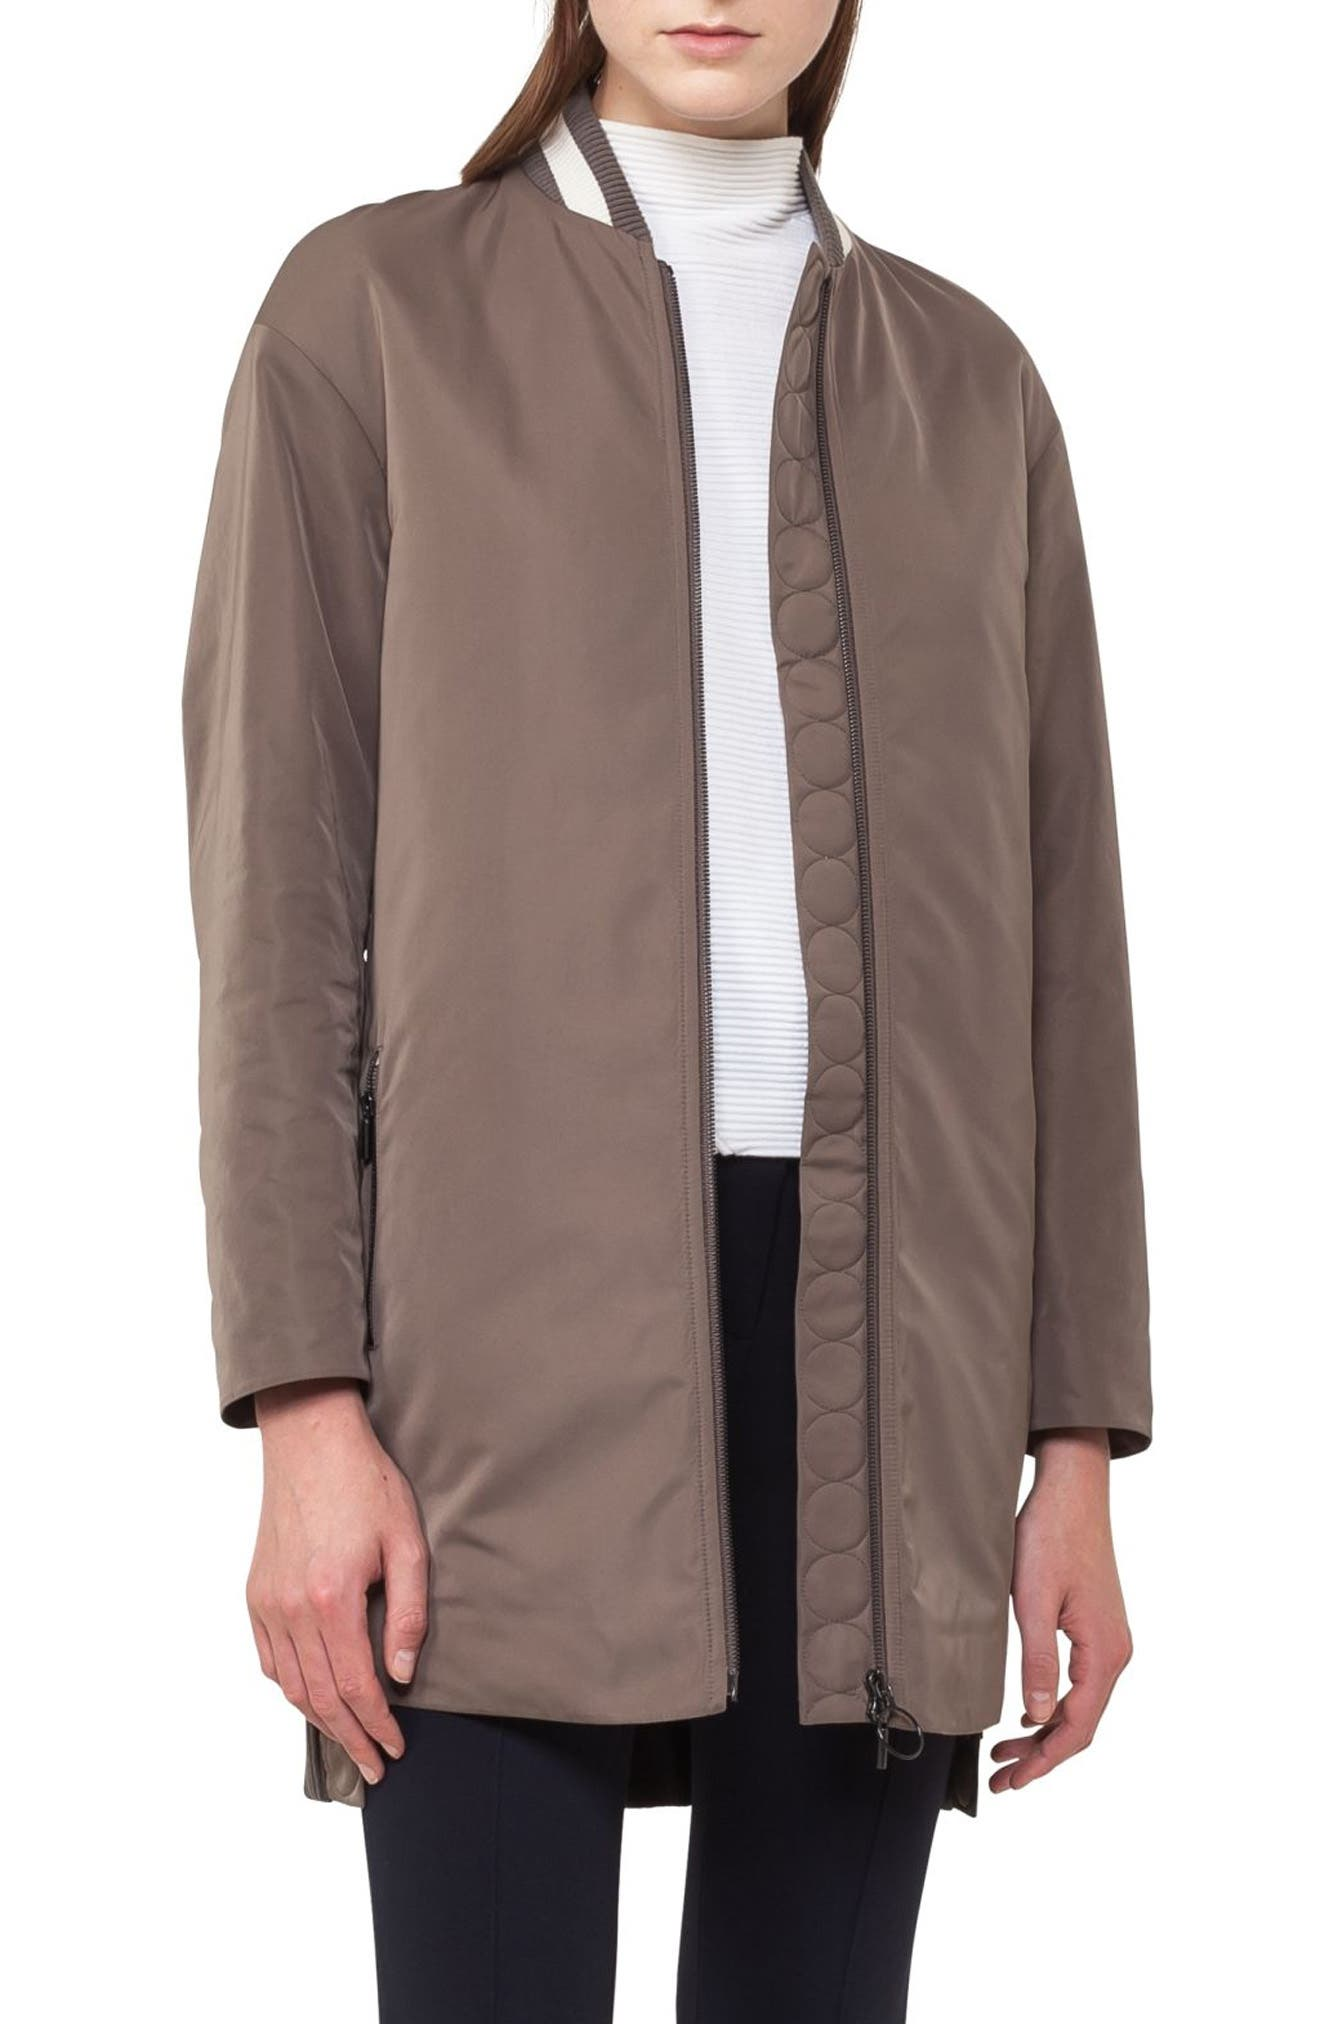 Techno Bomber Coat,                             Main thumbnail 1, color,                             Taupe